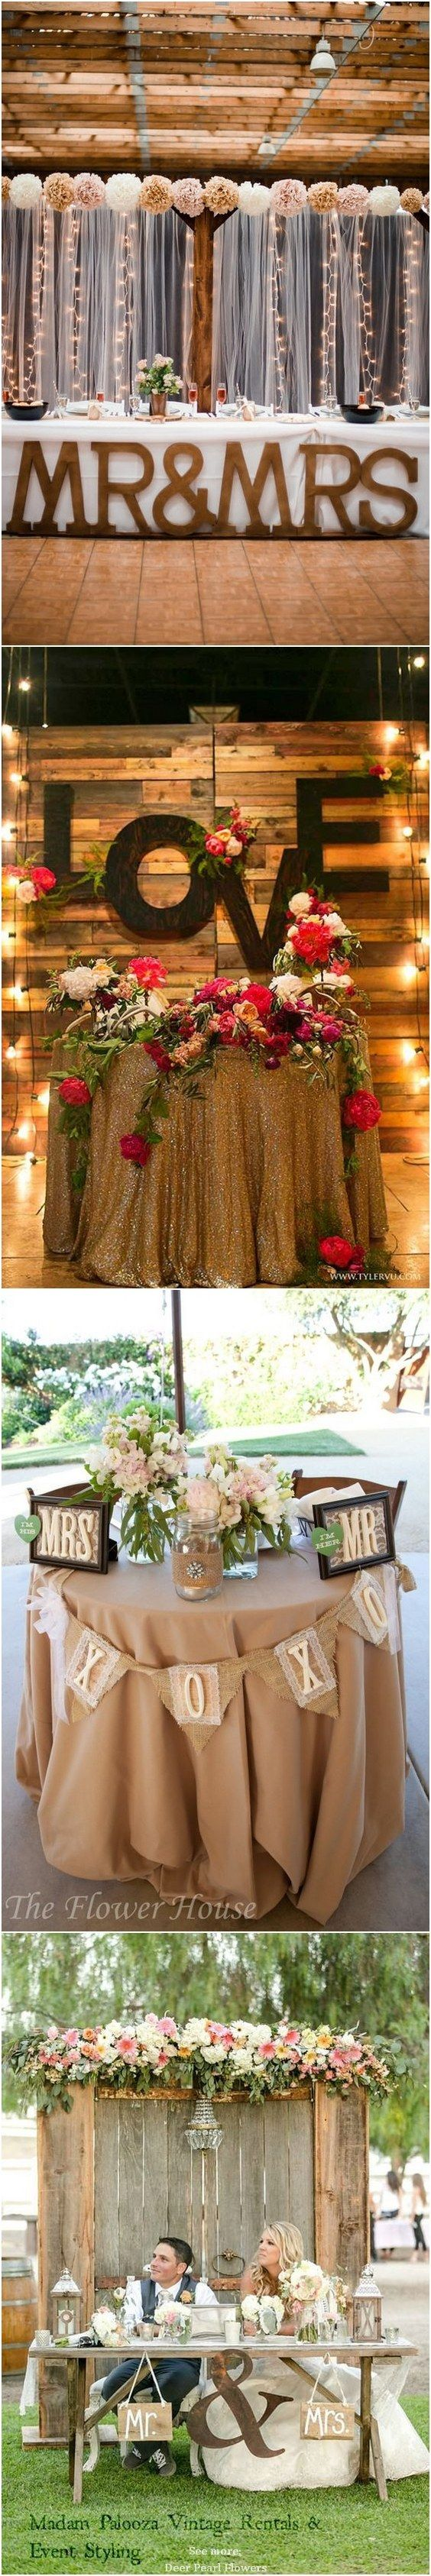 Top rustic country wedding sweetheart table ideas someday